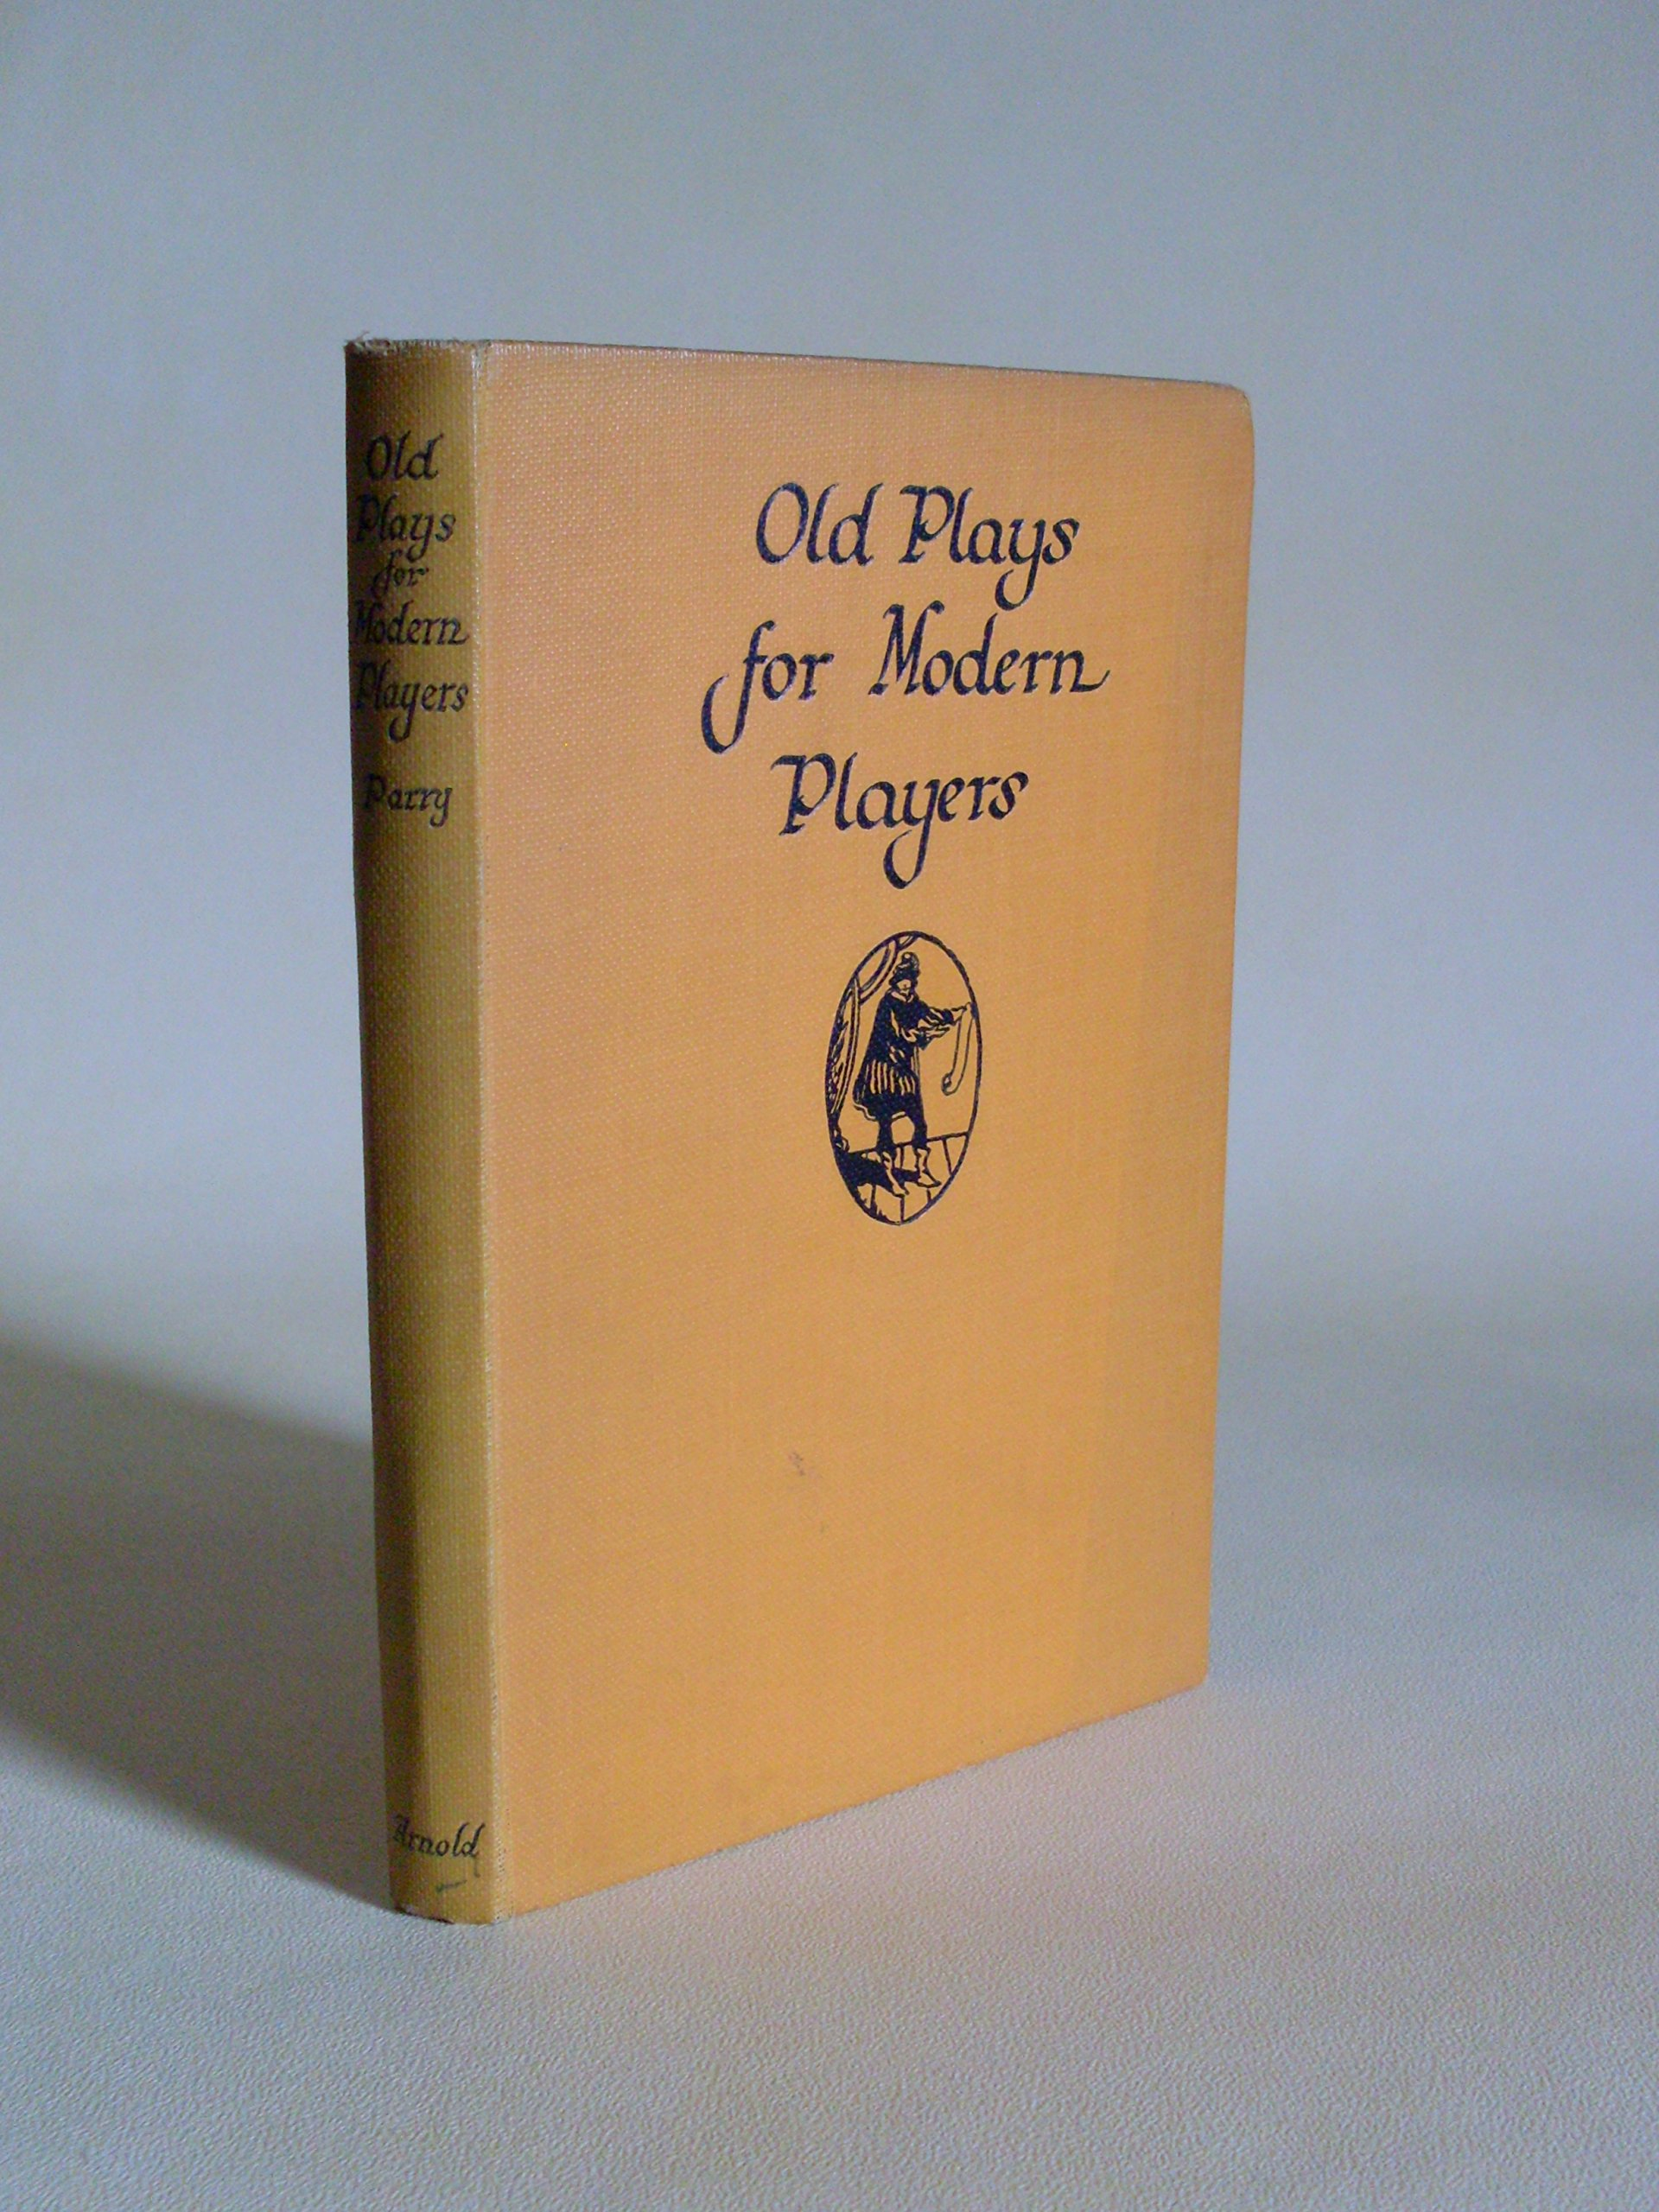 Old Plays for Modern Players, W. Dyfed Parry (Ed.)